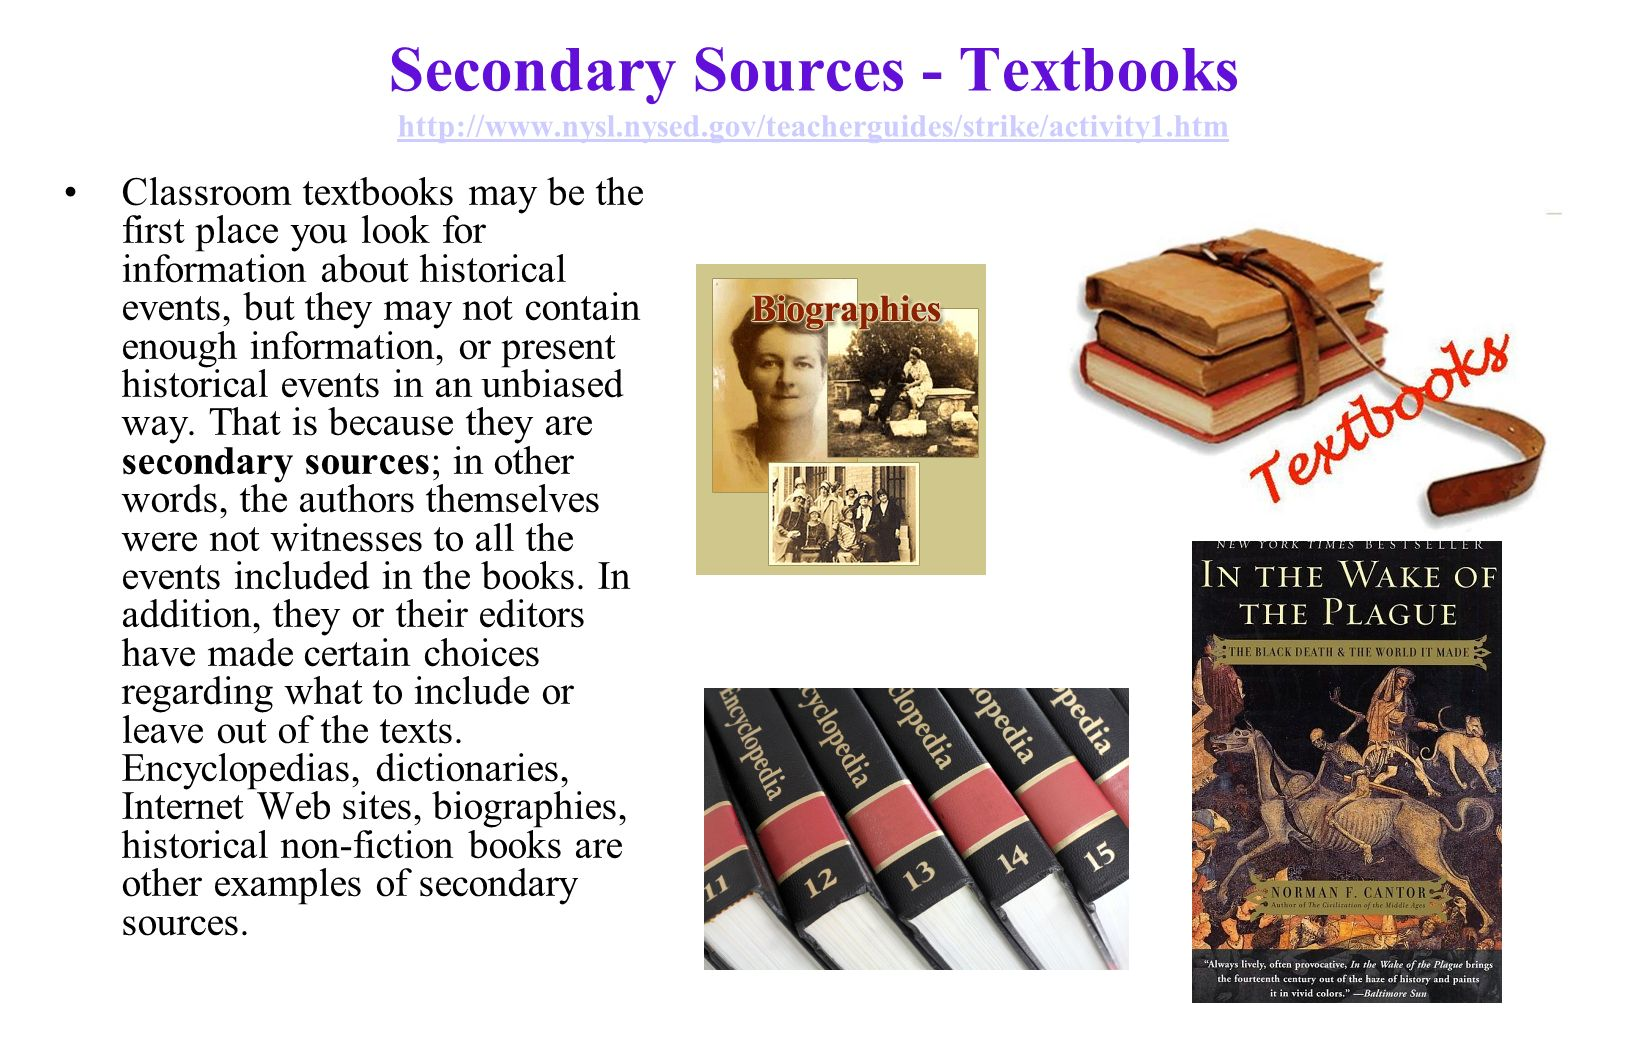 Secondary Sources - Textbooks http://www.nysl.nysed.gov/teacherguides/strike/activity1.htm http://www.nysl.nysed.gov/teacherguides/strike/activity1.htm Classroom textbooks may be the first place you look for information about historical events, but they may not contain enough information, or present historical events in an unbiased way.